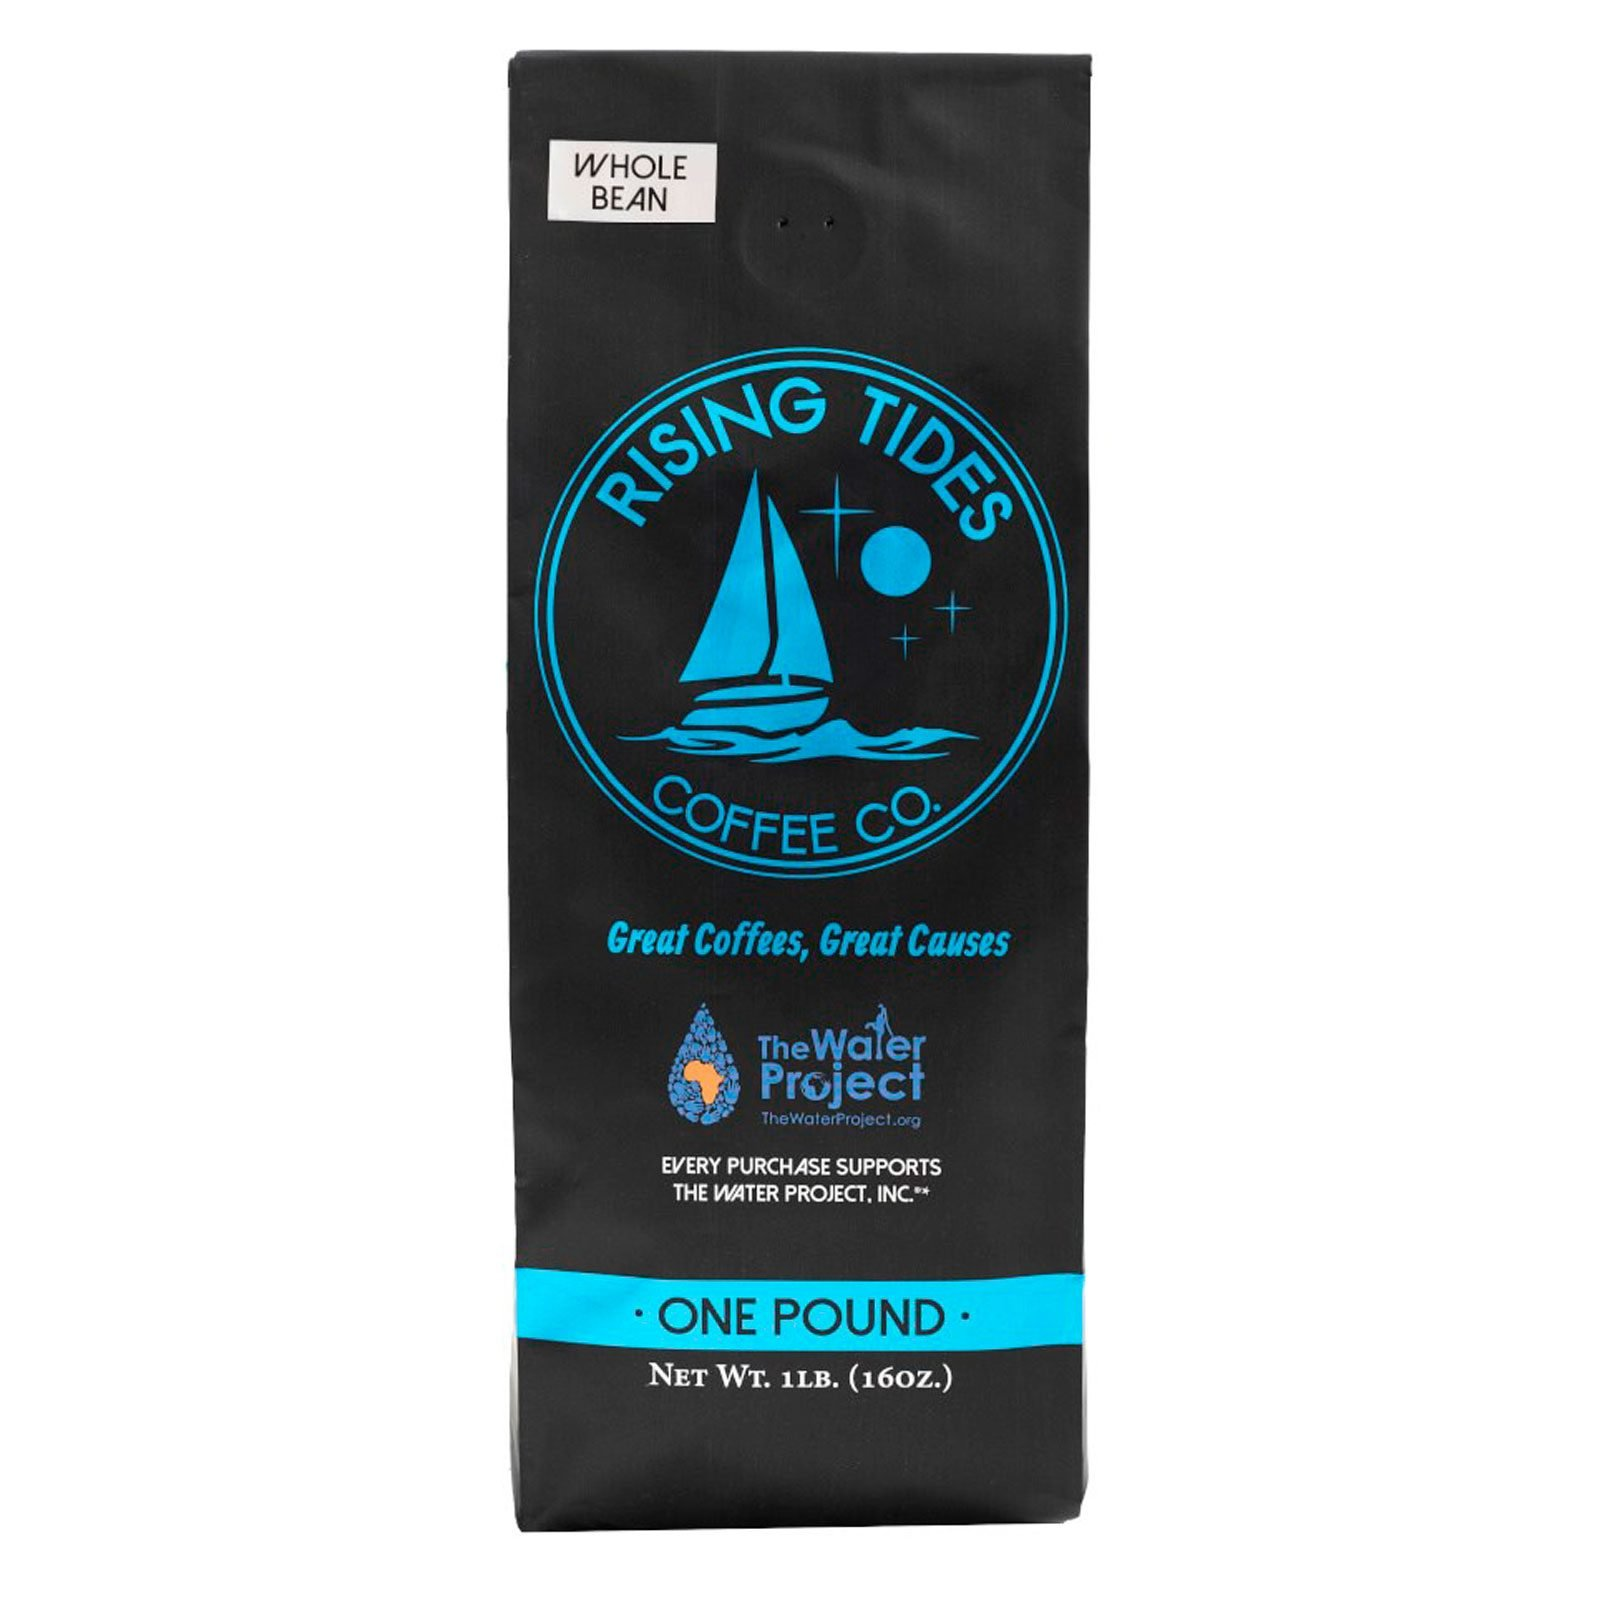 Rising Tides Coffee Co. Blue Label Whole Bean Coffee